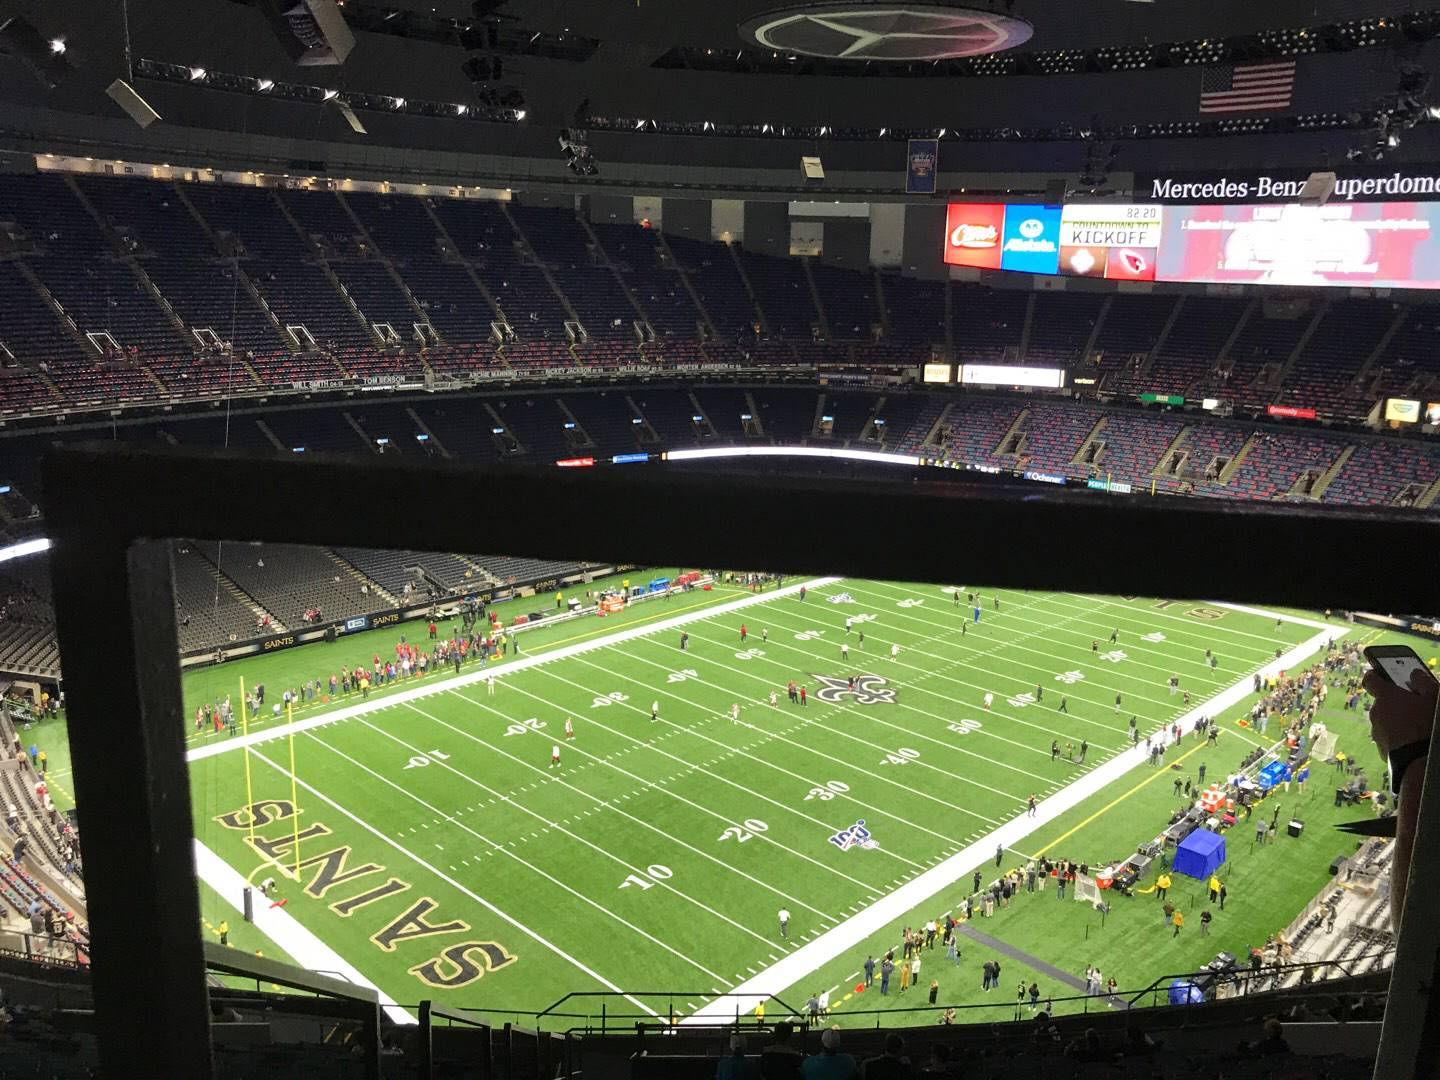 Mercedes-Benz Superdome Section 647 Row 26 Seat 21